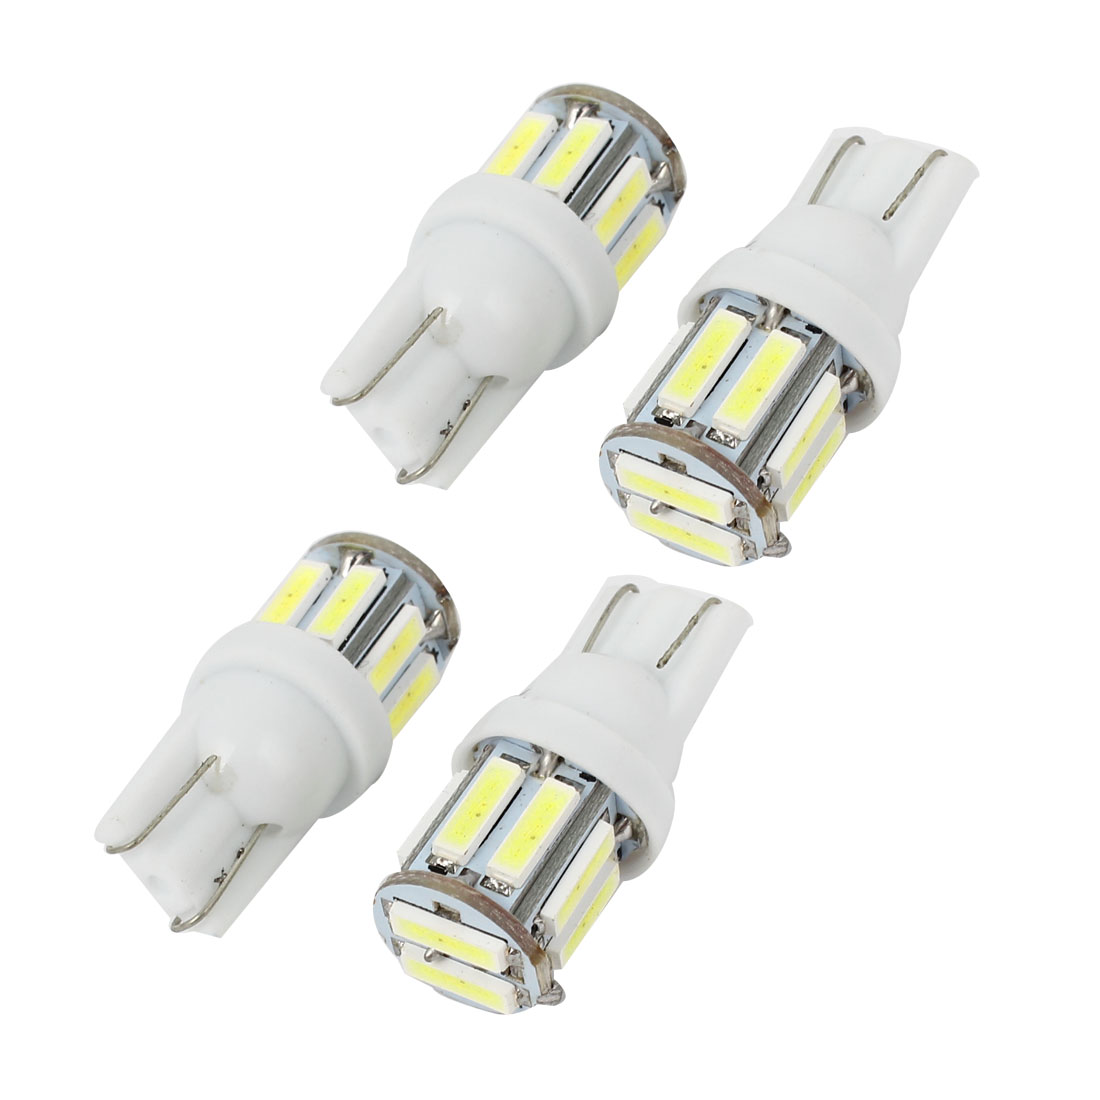 4 Pcs Auto T20 1440 White 720 SMD 10 LED Tail Backup Light Side Bulb 12V